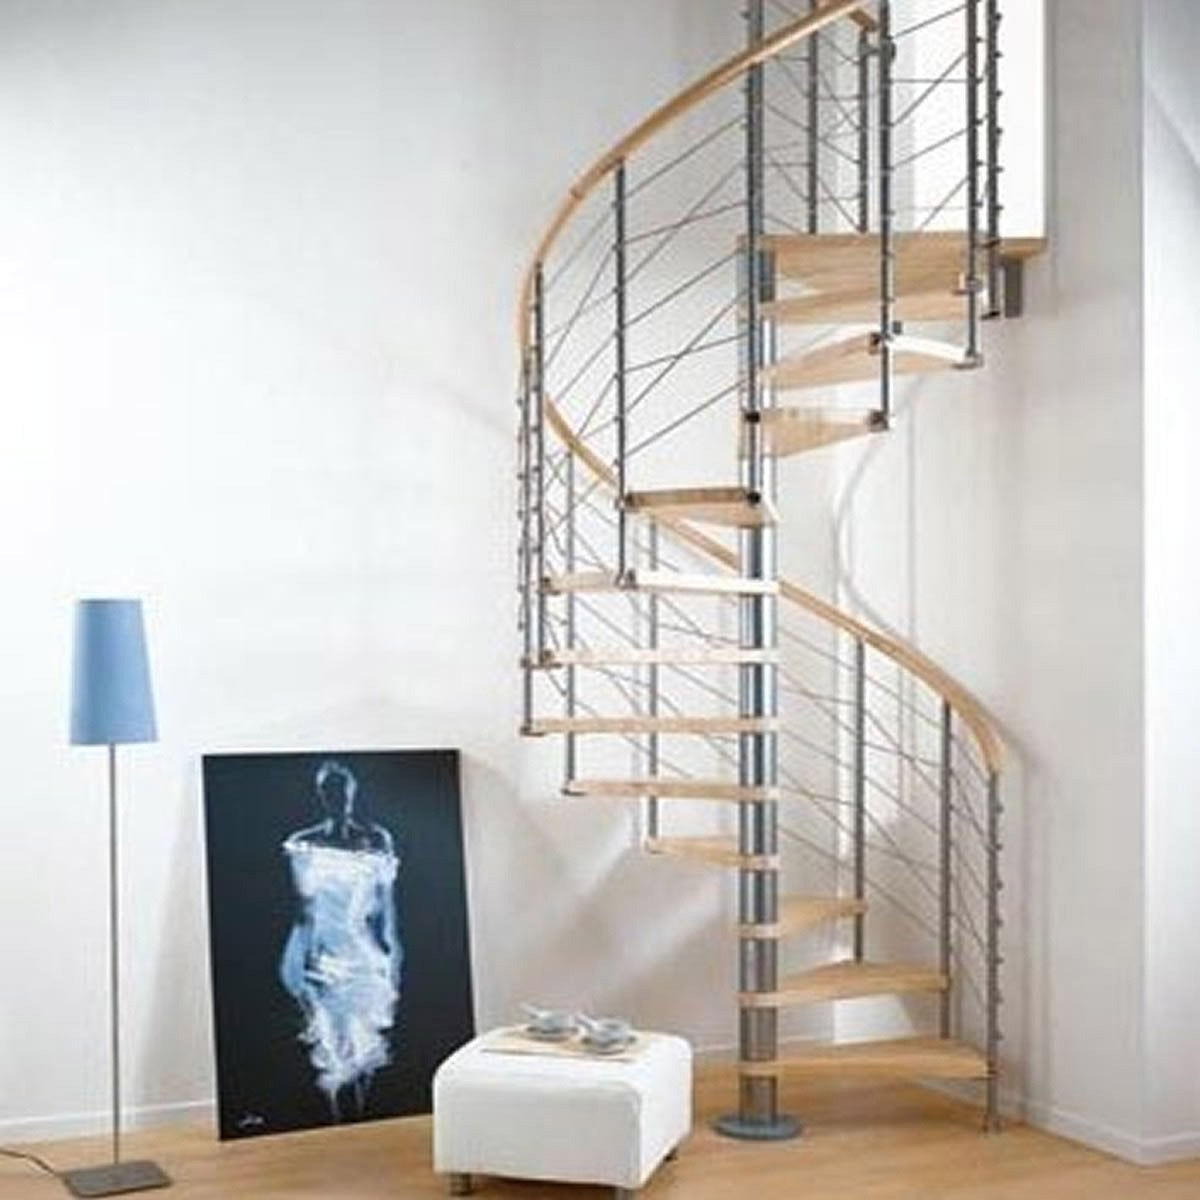 Escalier colima on rond ring line marches bois structure m tal chrom ler - Escalier exterieur metallique leroy merlin ...